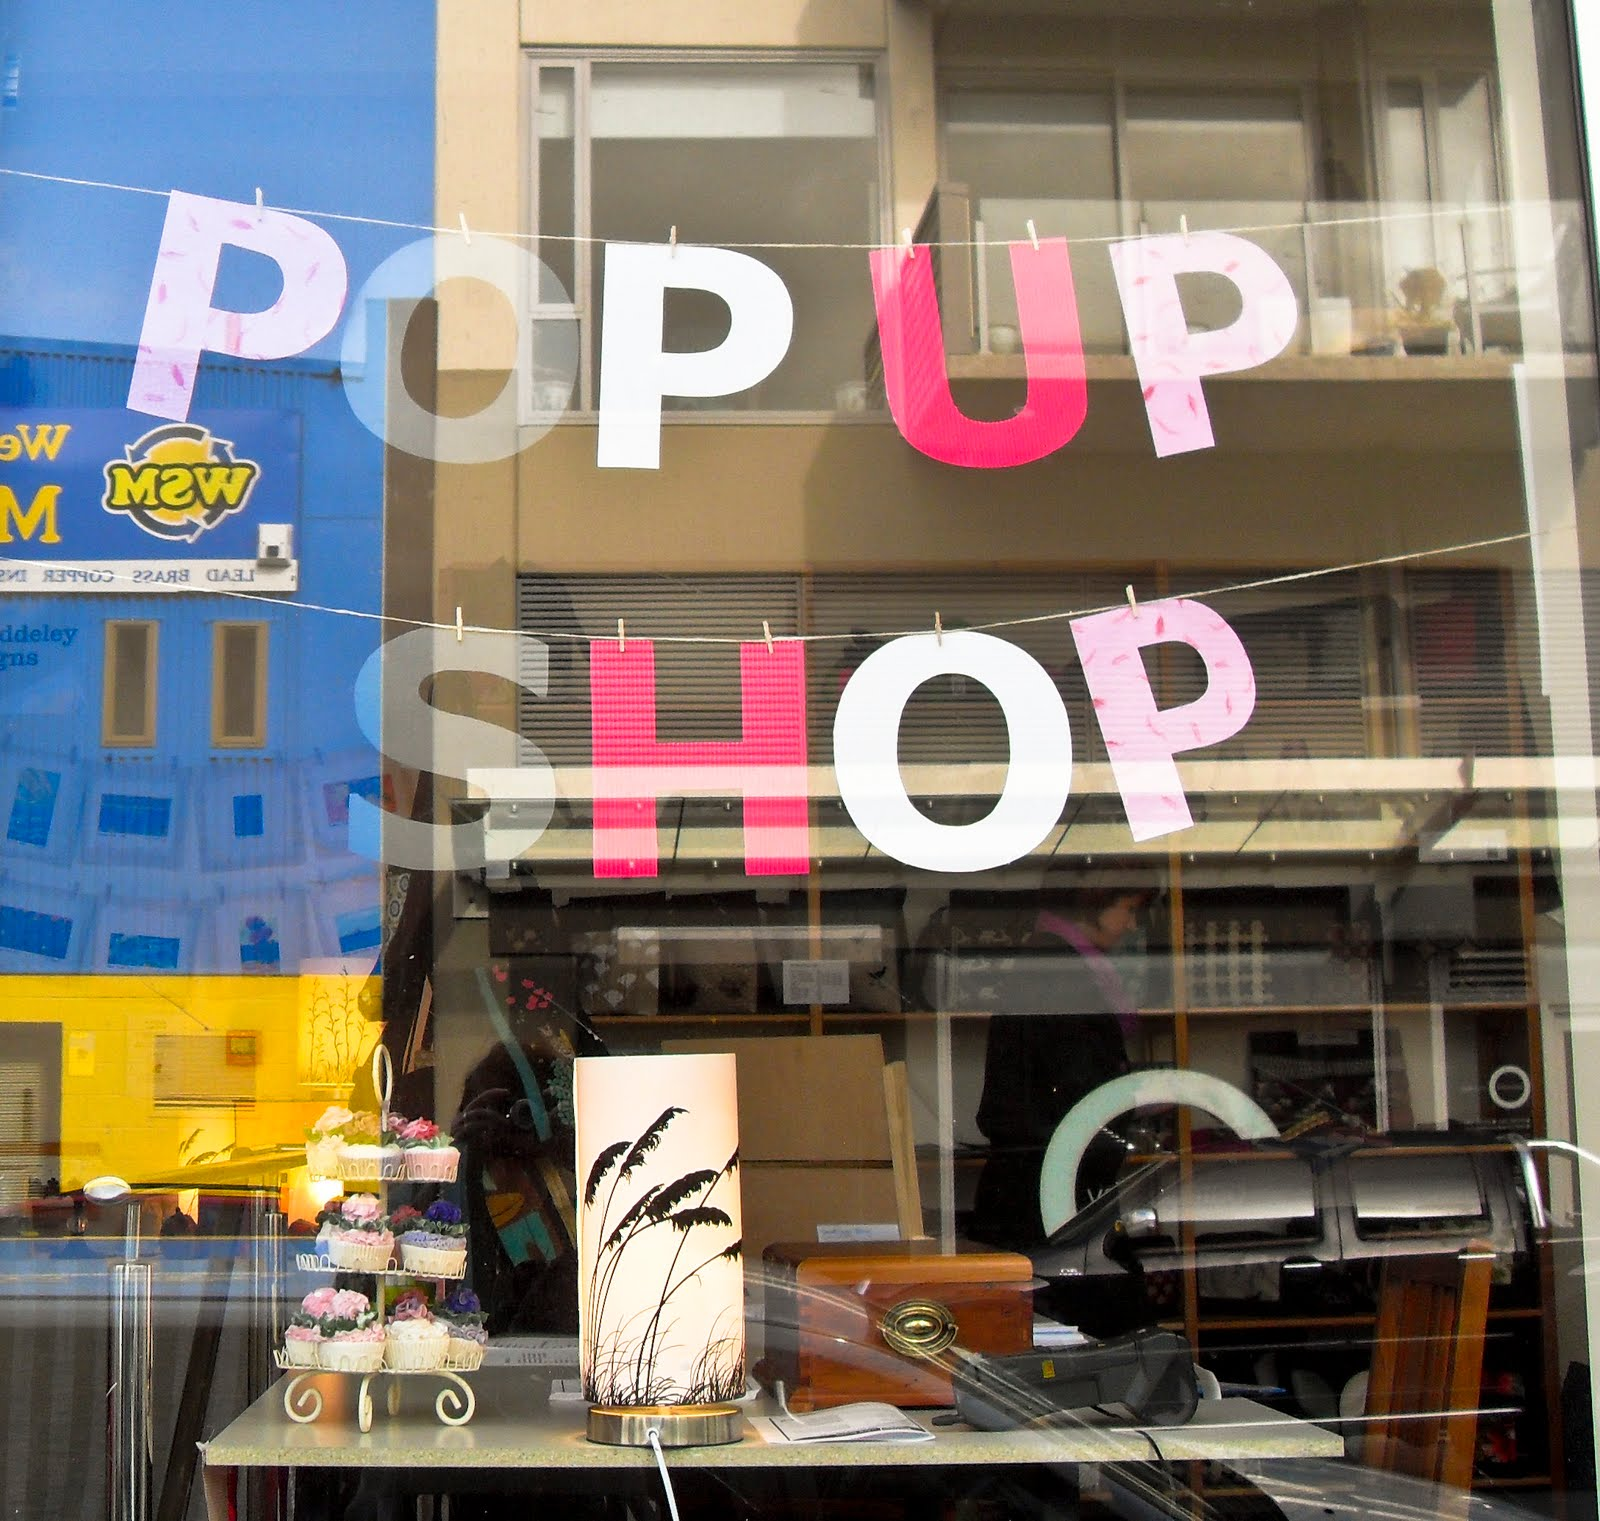 Pop Up Shopping Mondays: Why Pop-Up Shops Are Here To